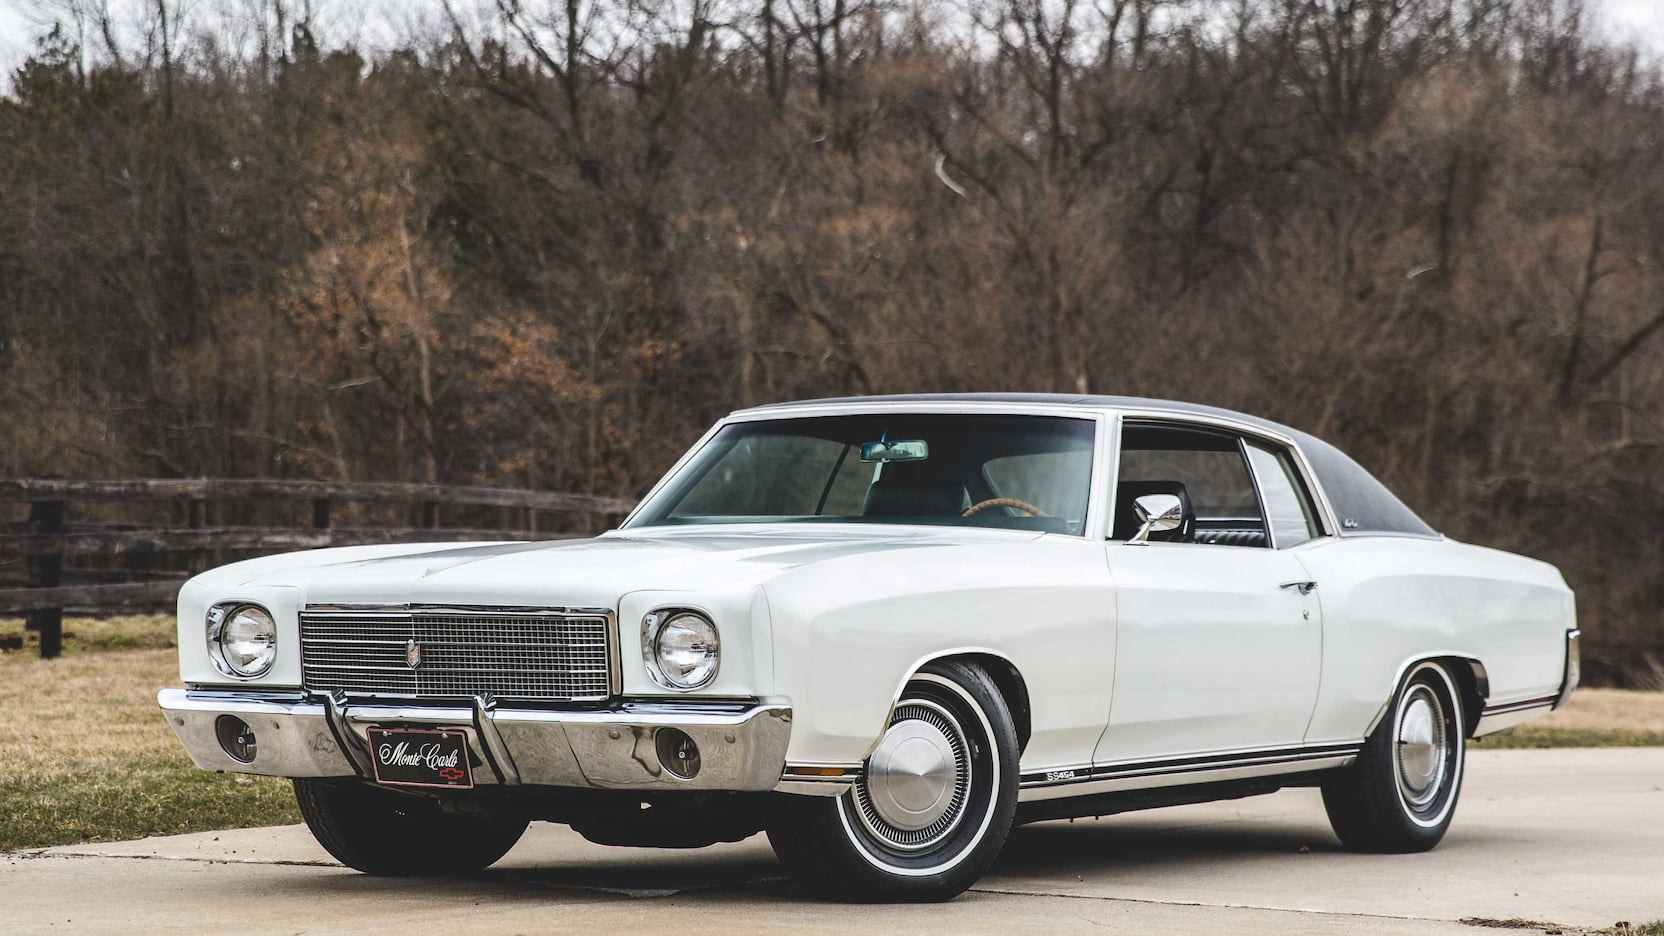 1970 Chevrolet Monte Carlo SS front 3/4